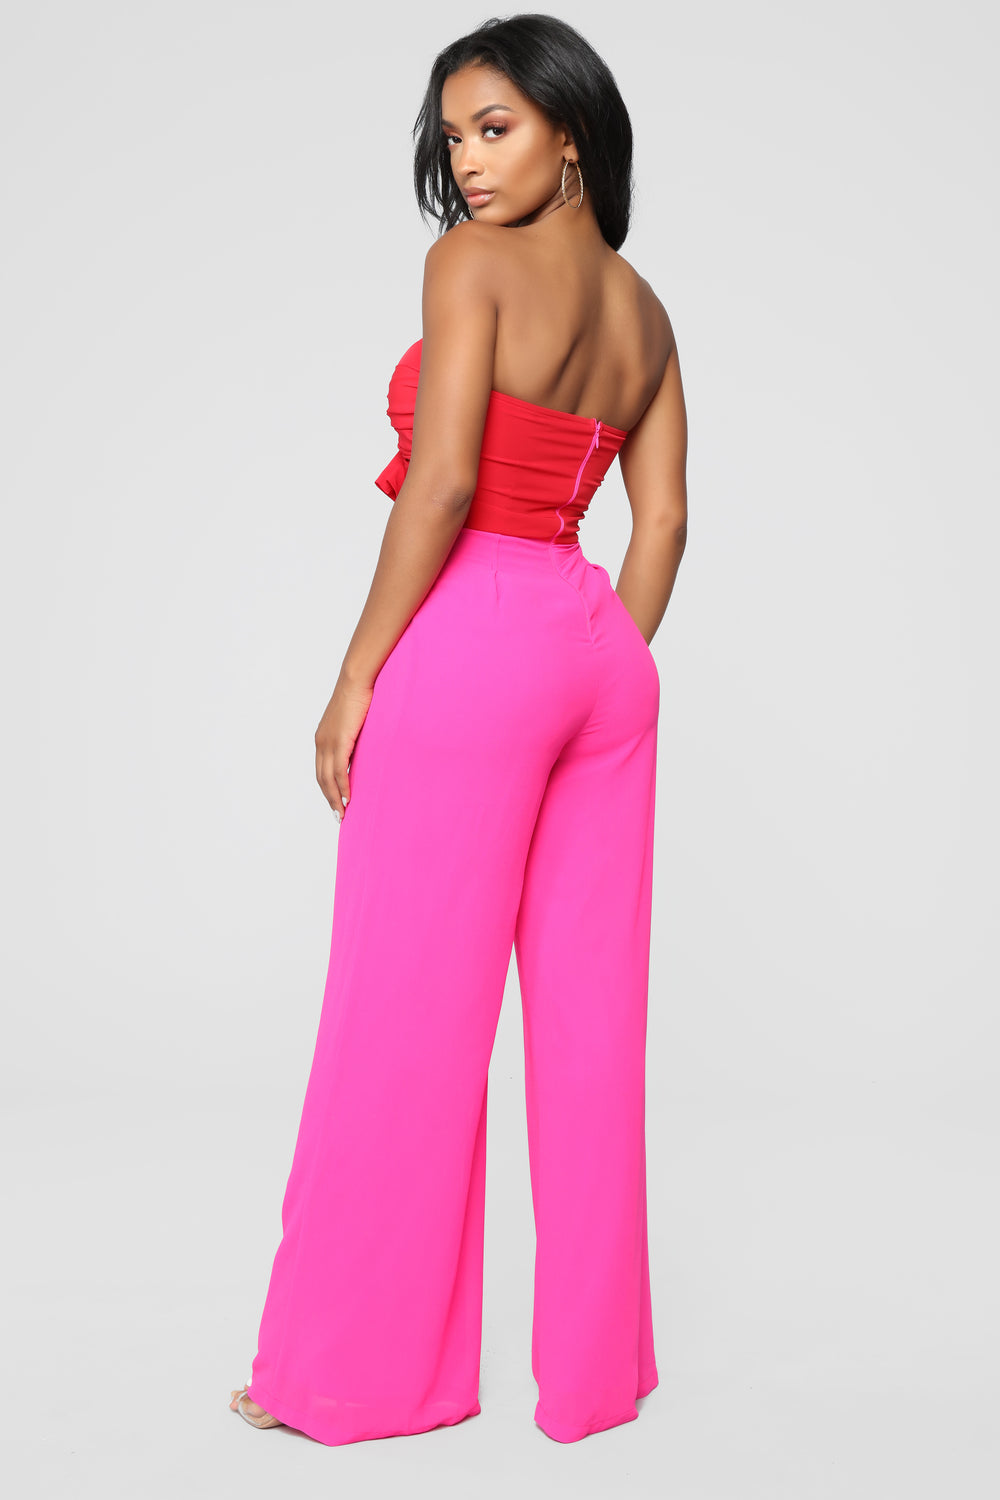 High Fashion Jumpsuit - Pink/Red